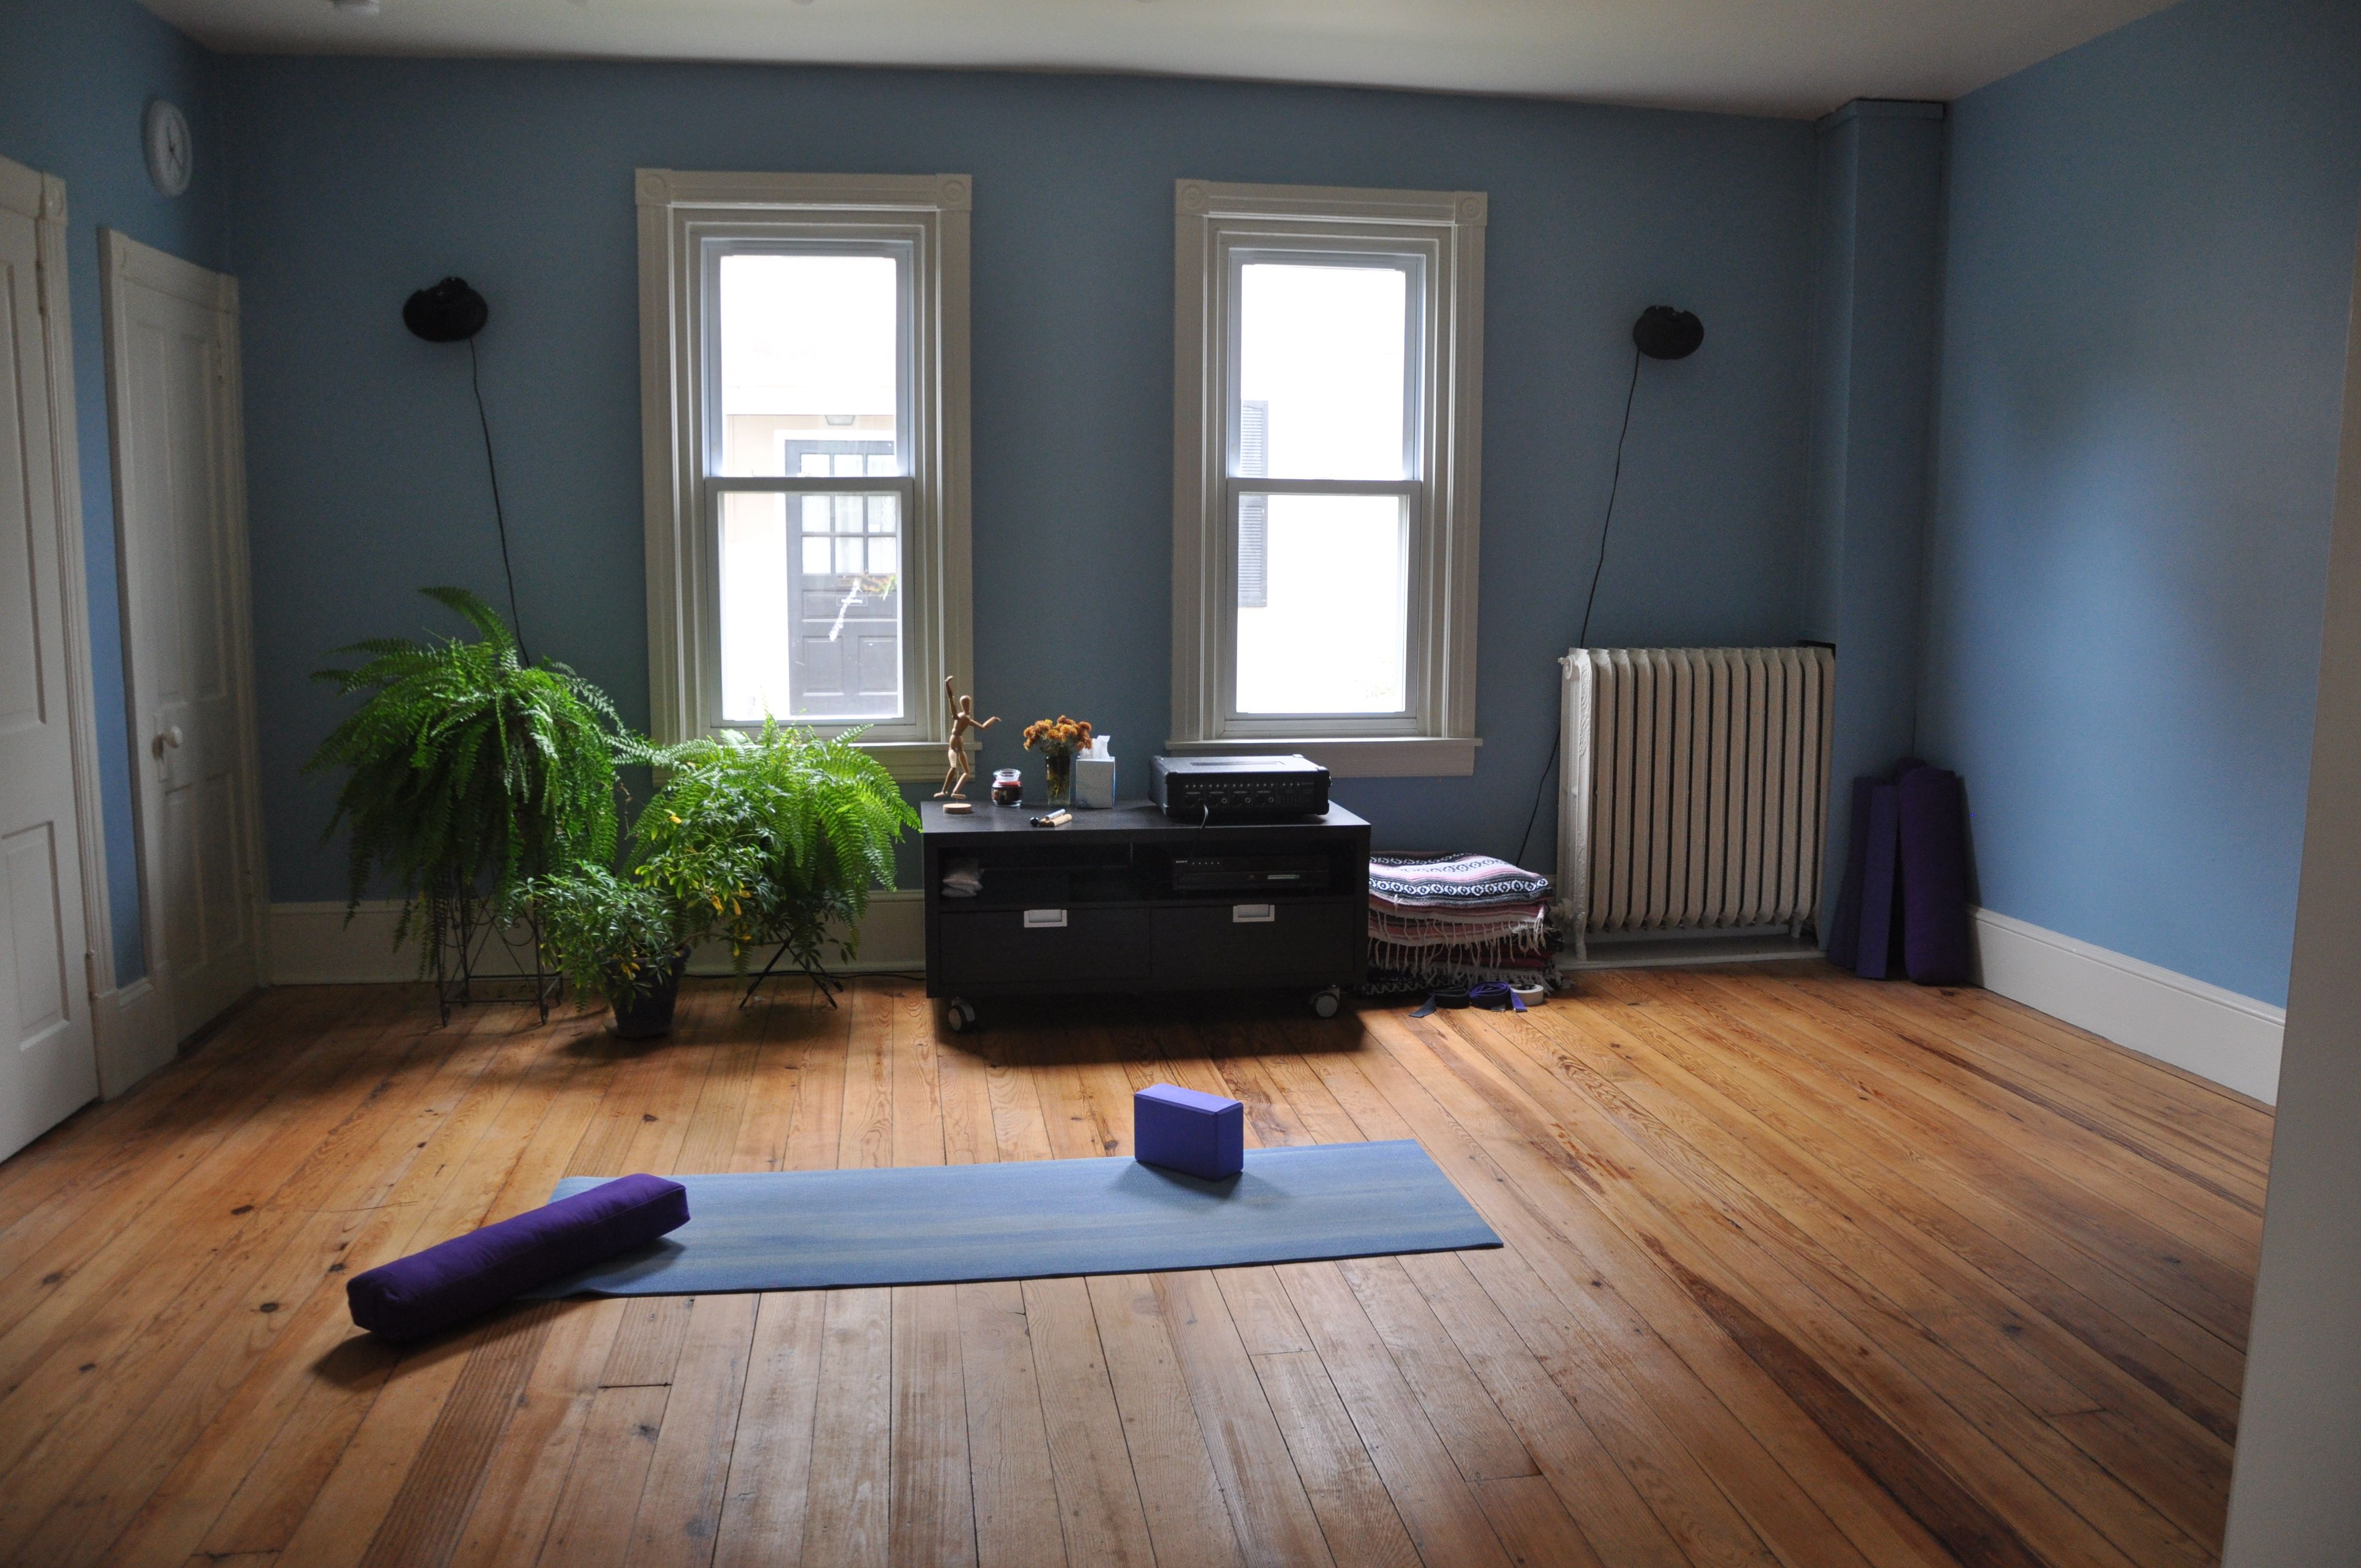 With Hardwood Flooring And A Minimalist Design You Can Bring The Serenity Of The Yoga Studio Into Your H Home Yoga Room Yoga Room Design Meditation Room Decor